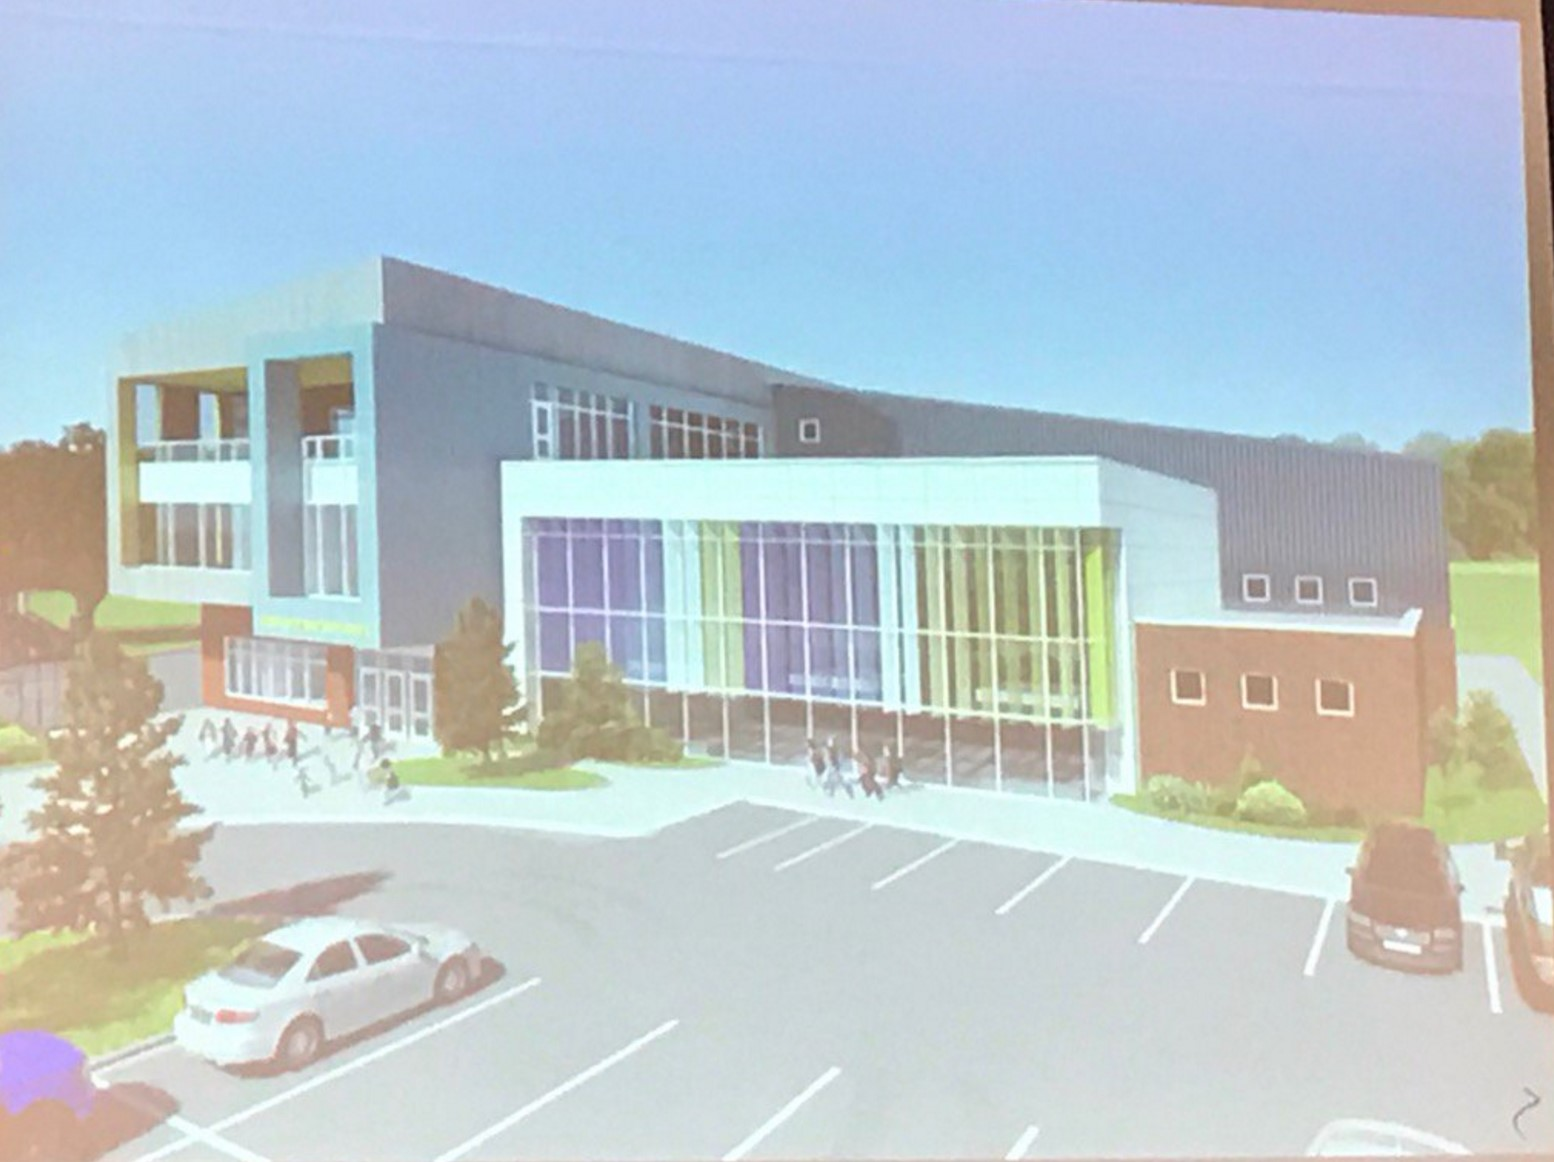 Seventy percent of children walk to LMST. The proposed site design welcomes these children with a large parking lot.